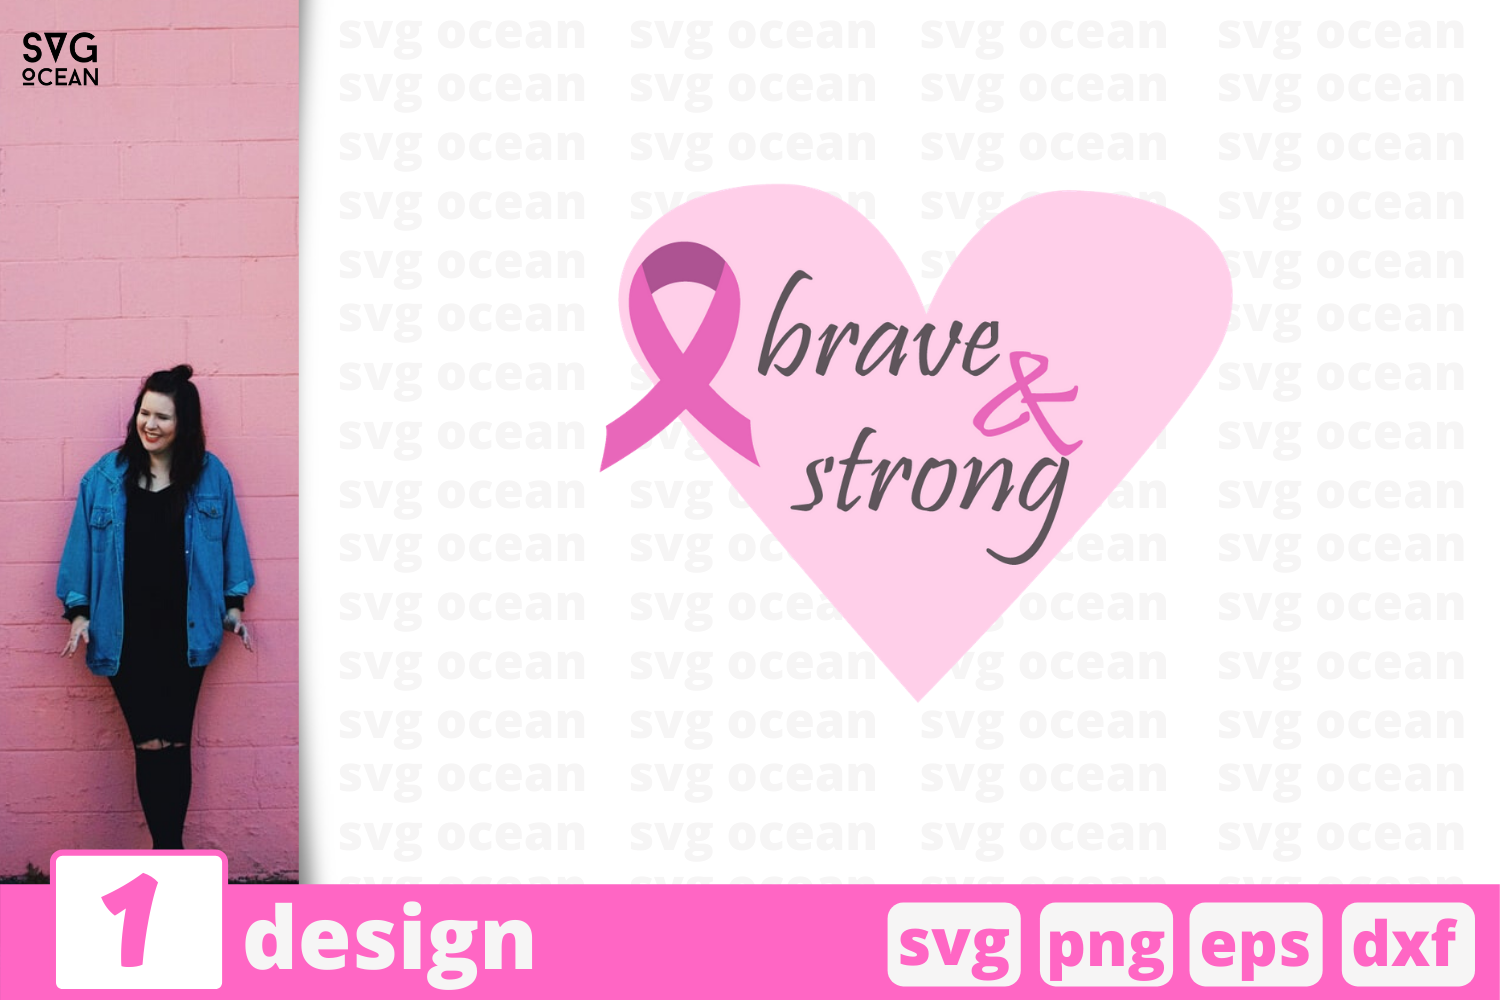 1 Brave And Strong Svg Bundle Quotes Cricut Svg By Svgocean